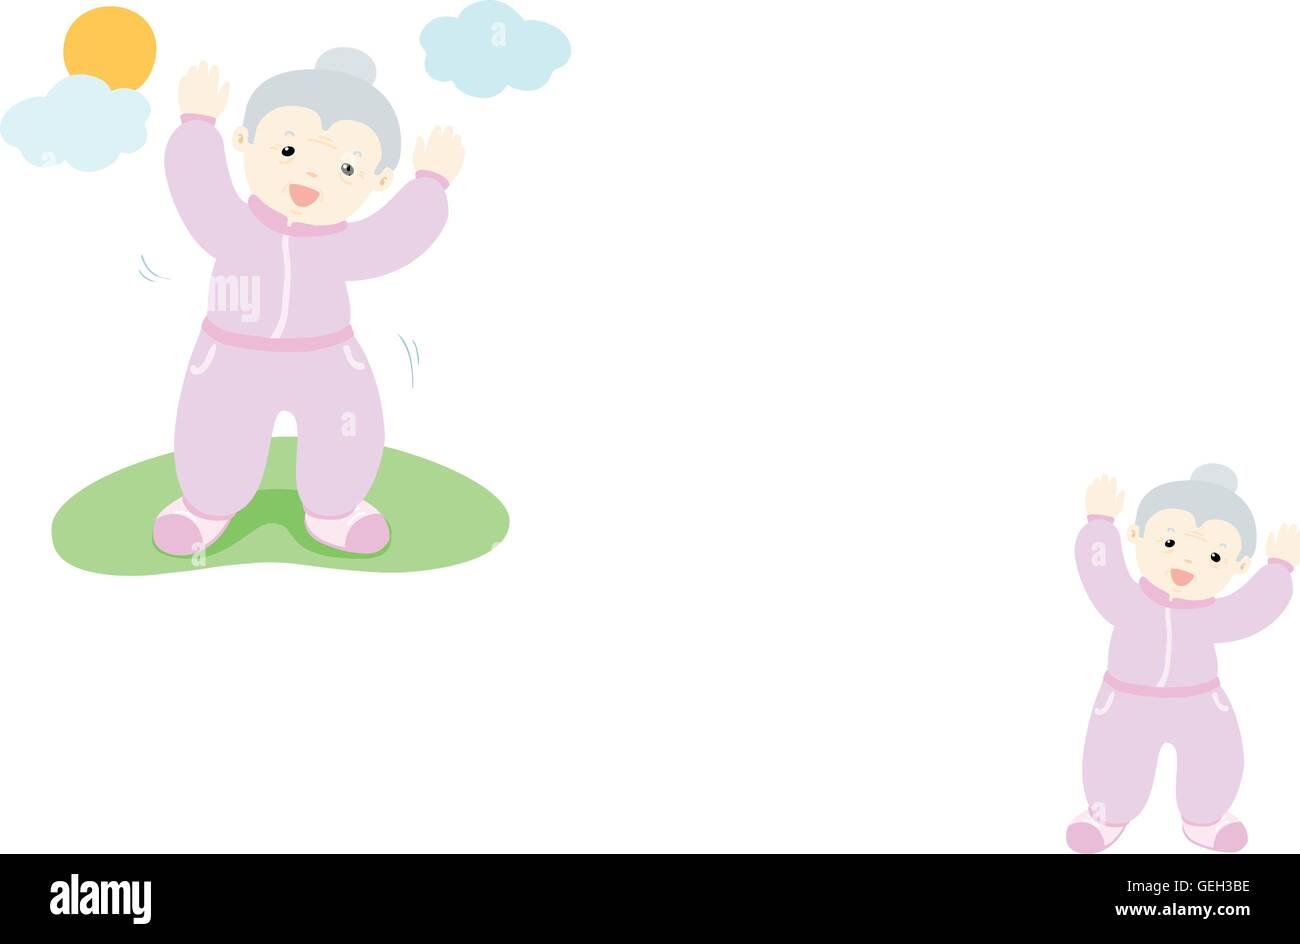 senior woman love to exercise vector illustration - Stock Image